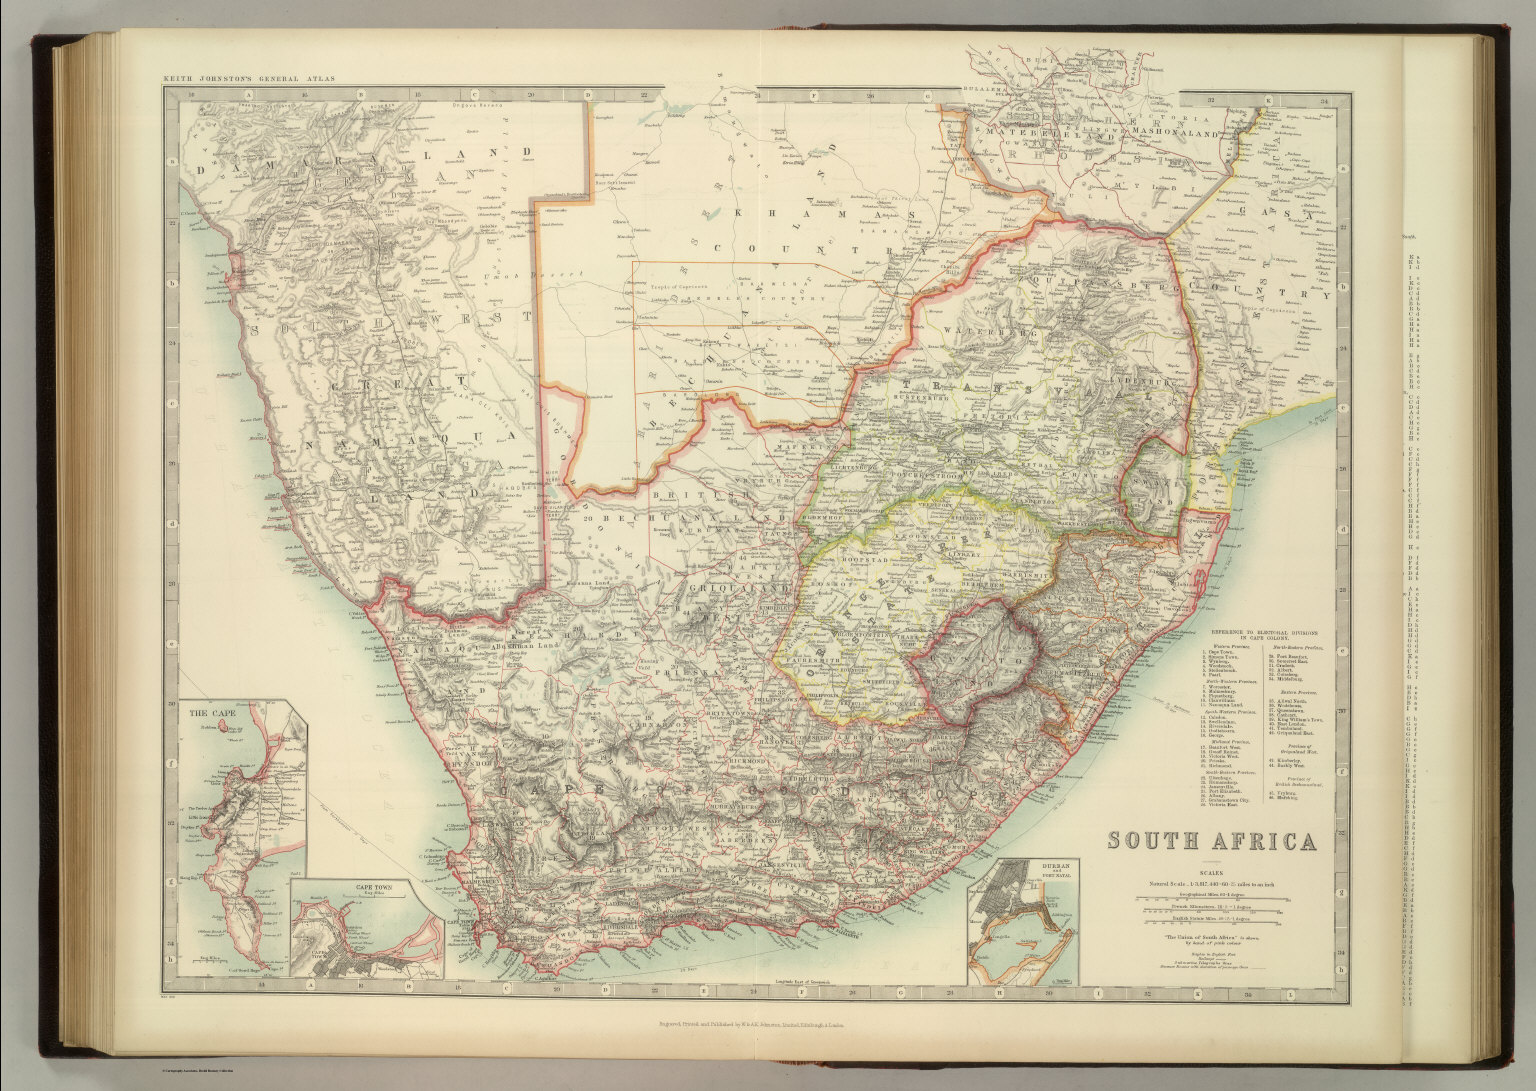 South africa david rumsey historical map collection south africa gumiabroncs Gallery